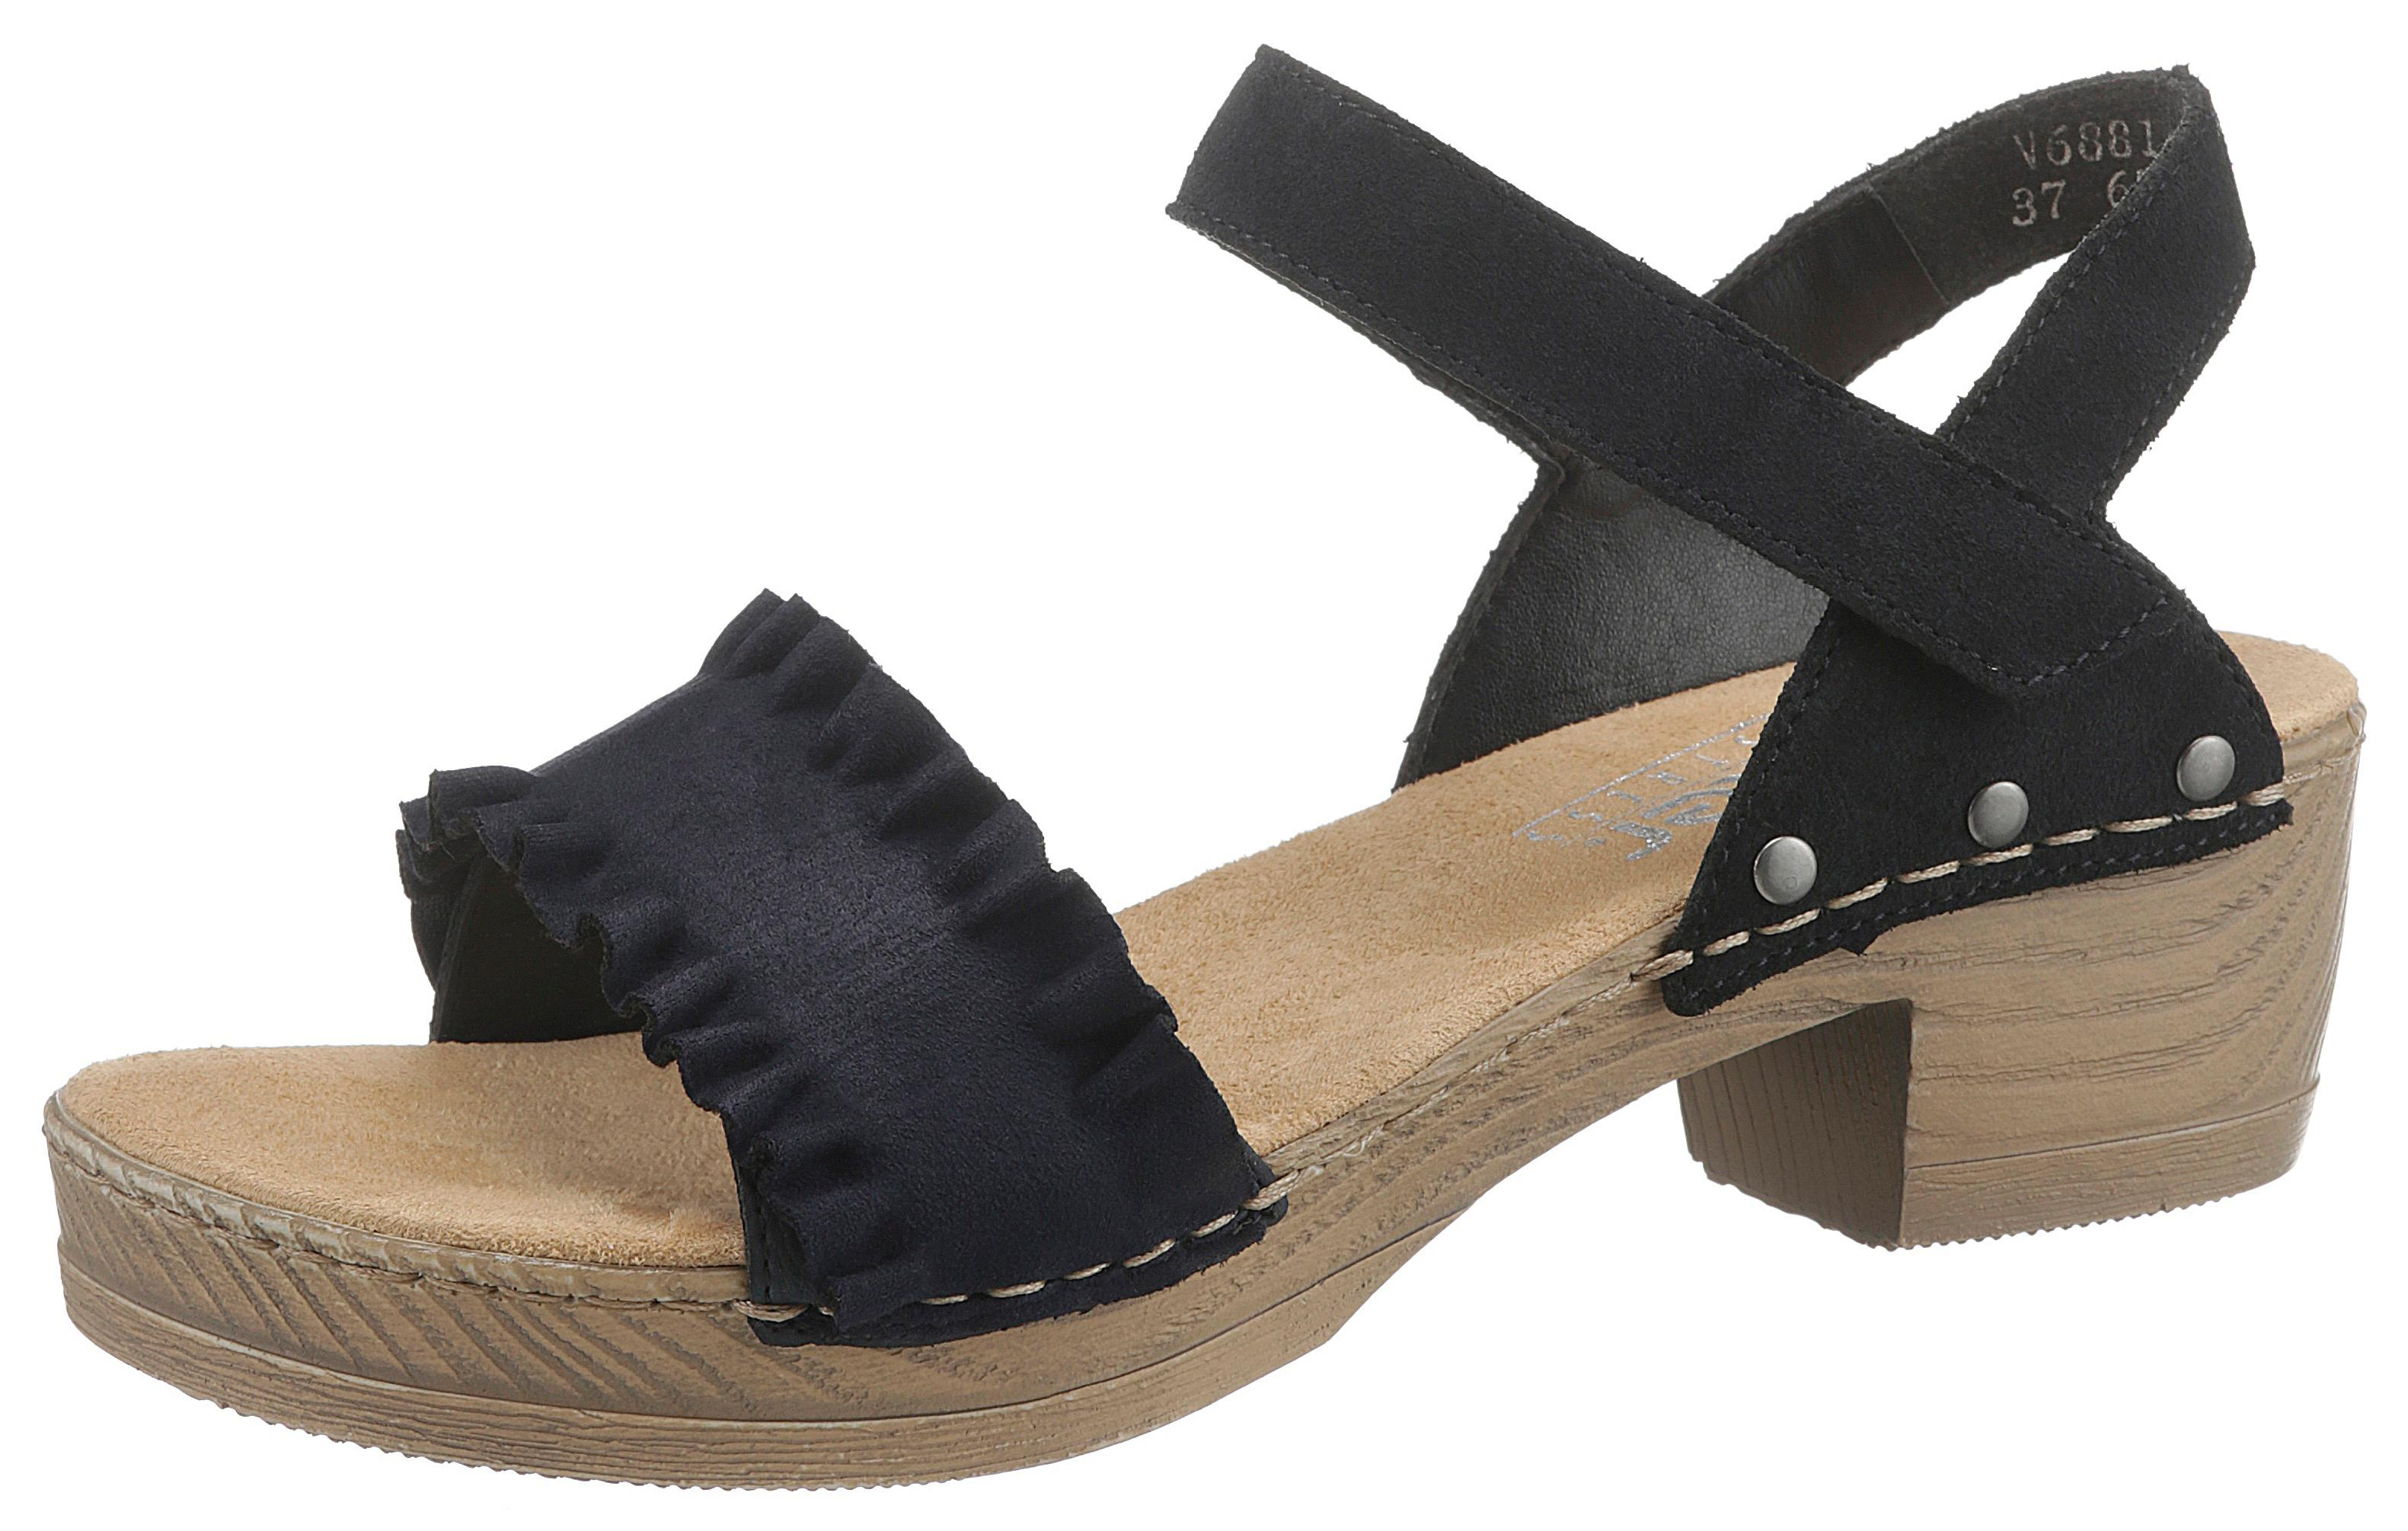 order huge inventory low price sale Rieker Sandalette per Rechnung | BAUR